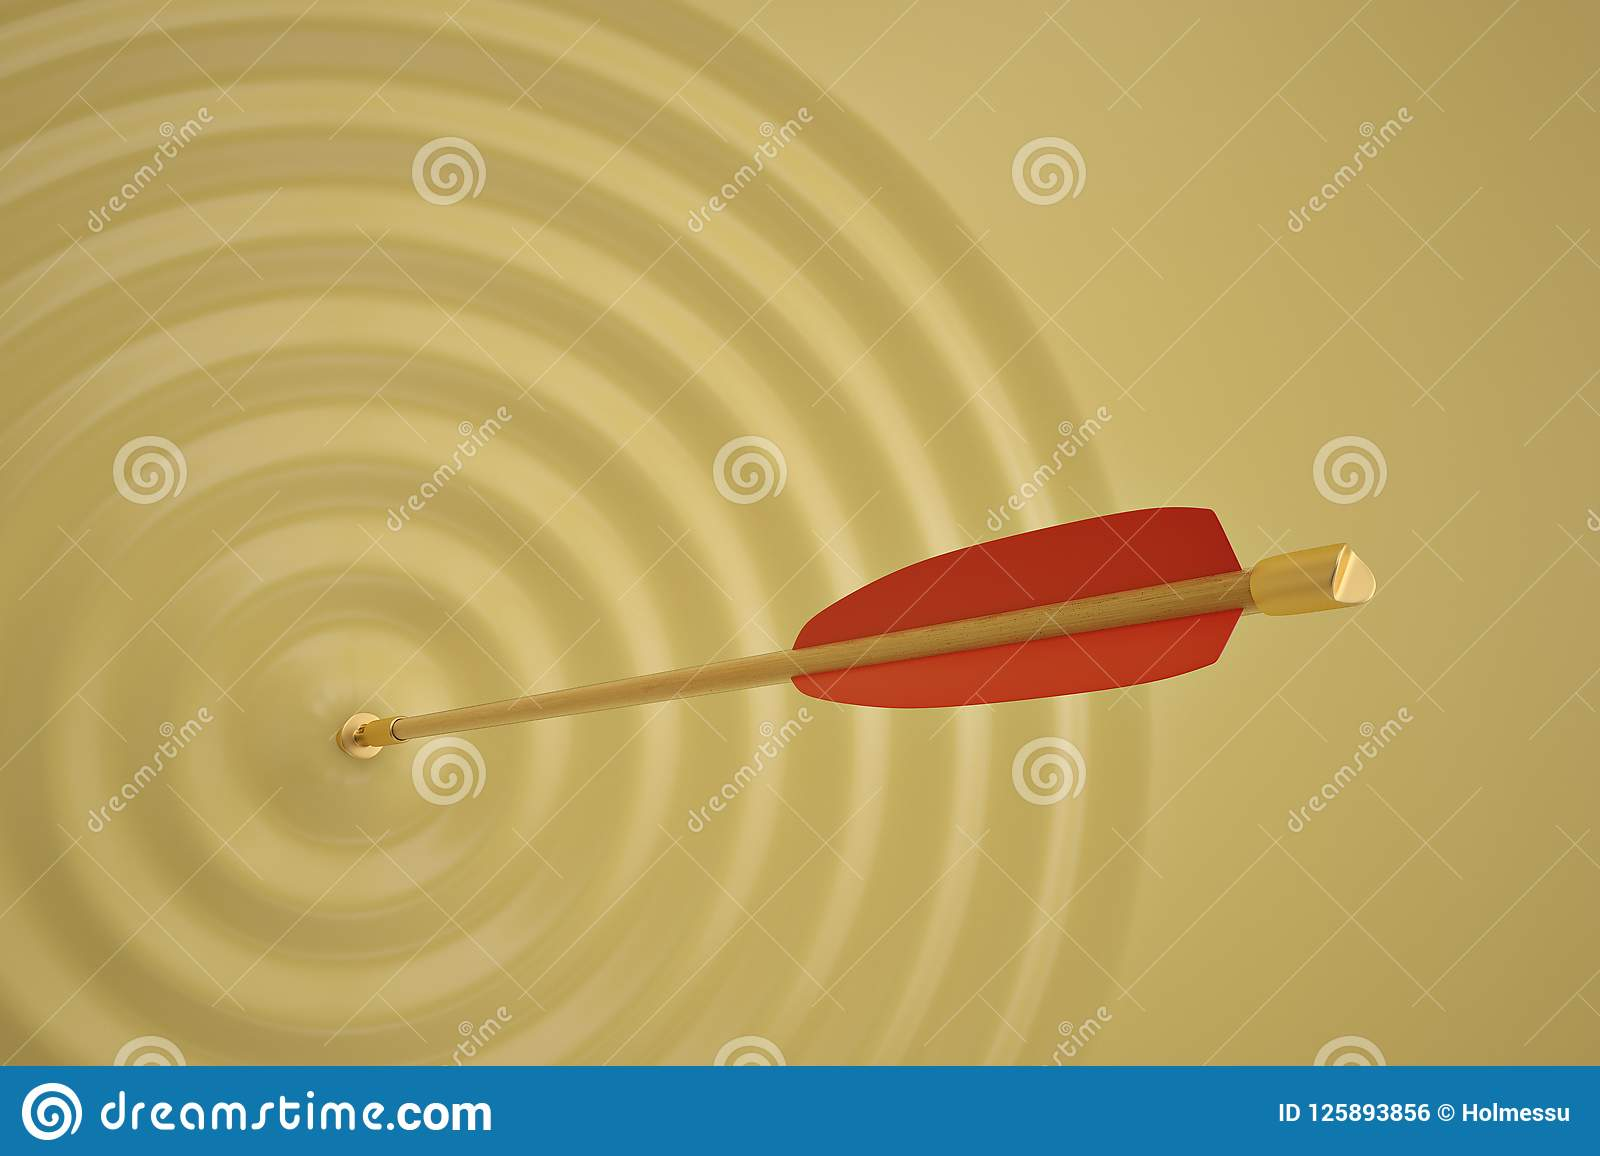 The arrow which makes a wave on yellow background. 3D illustration.